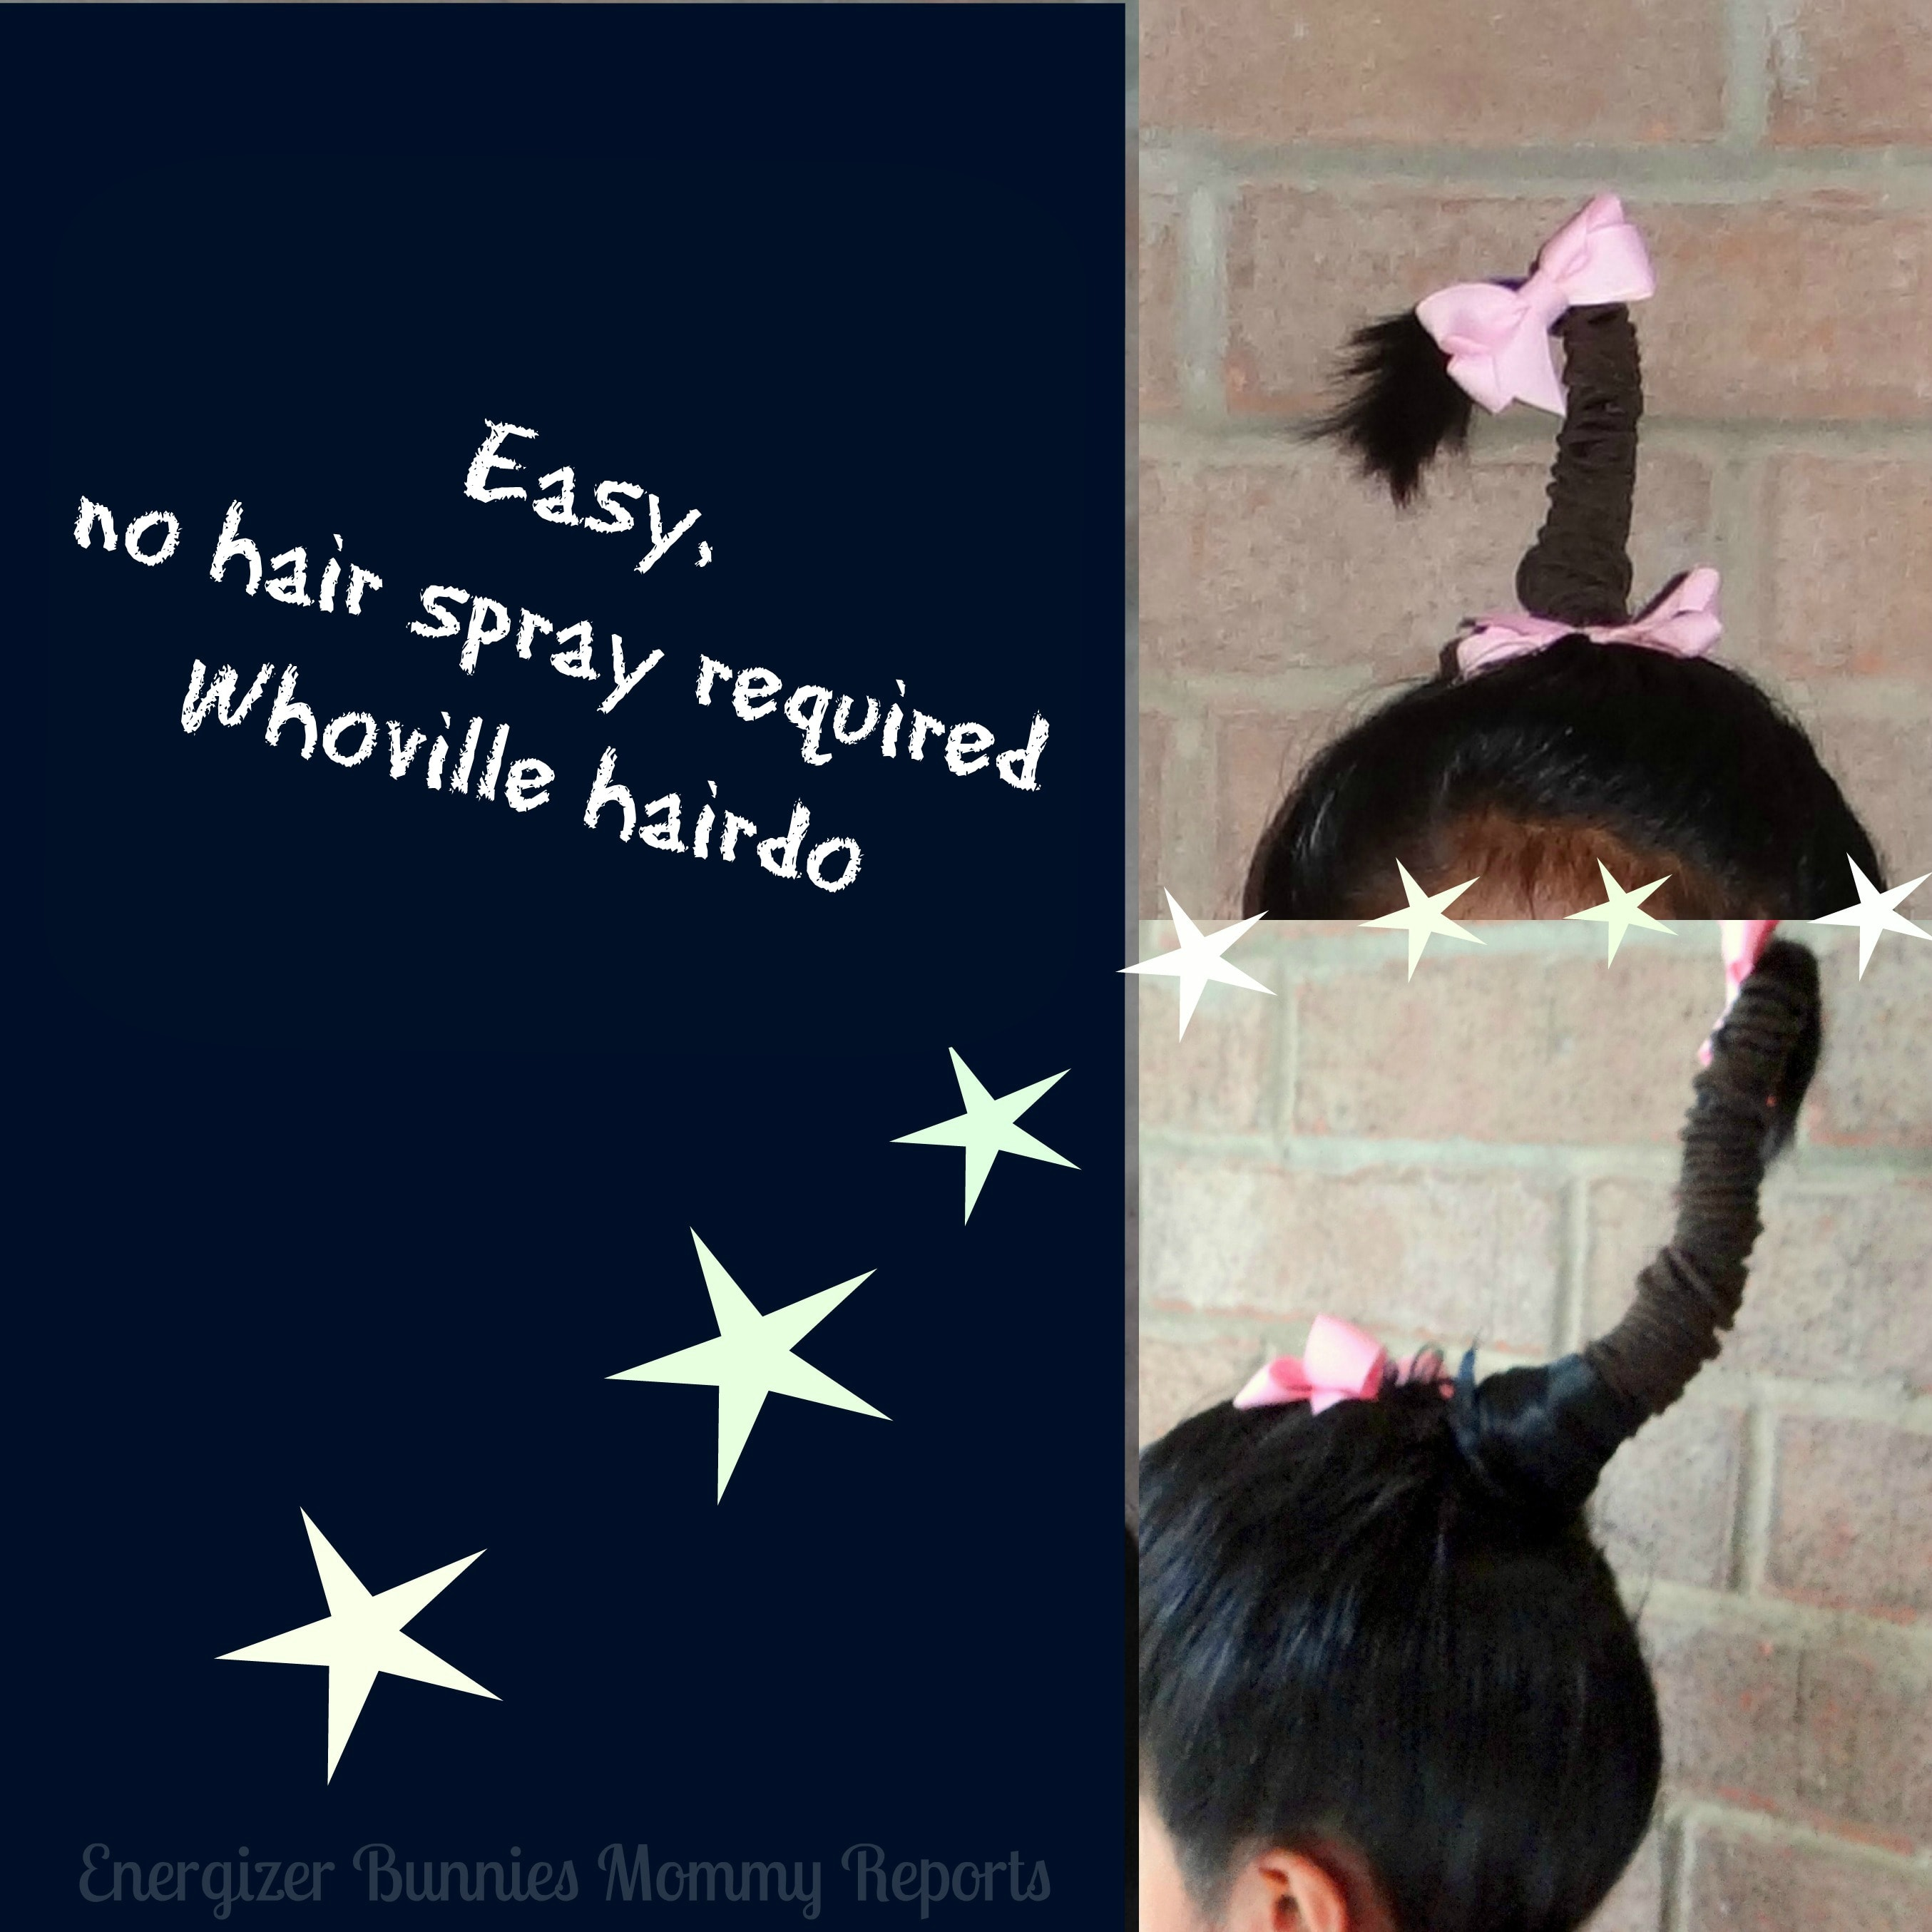 An easy, no hair spray required Who,ville hairdo for girls!